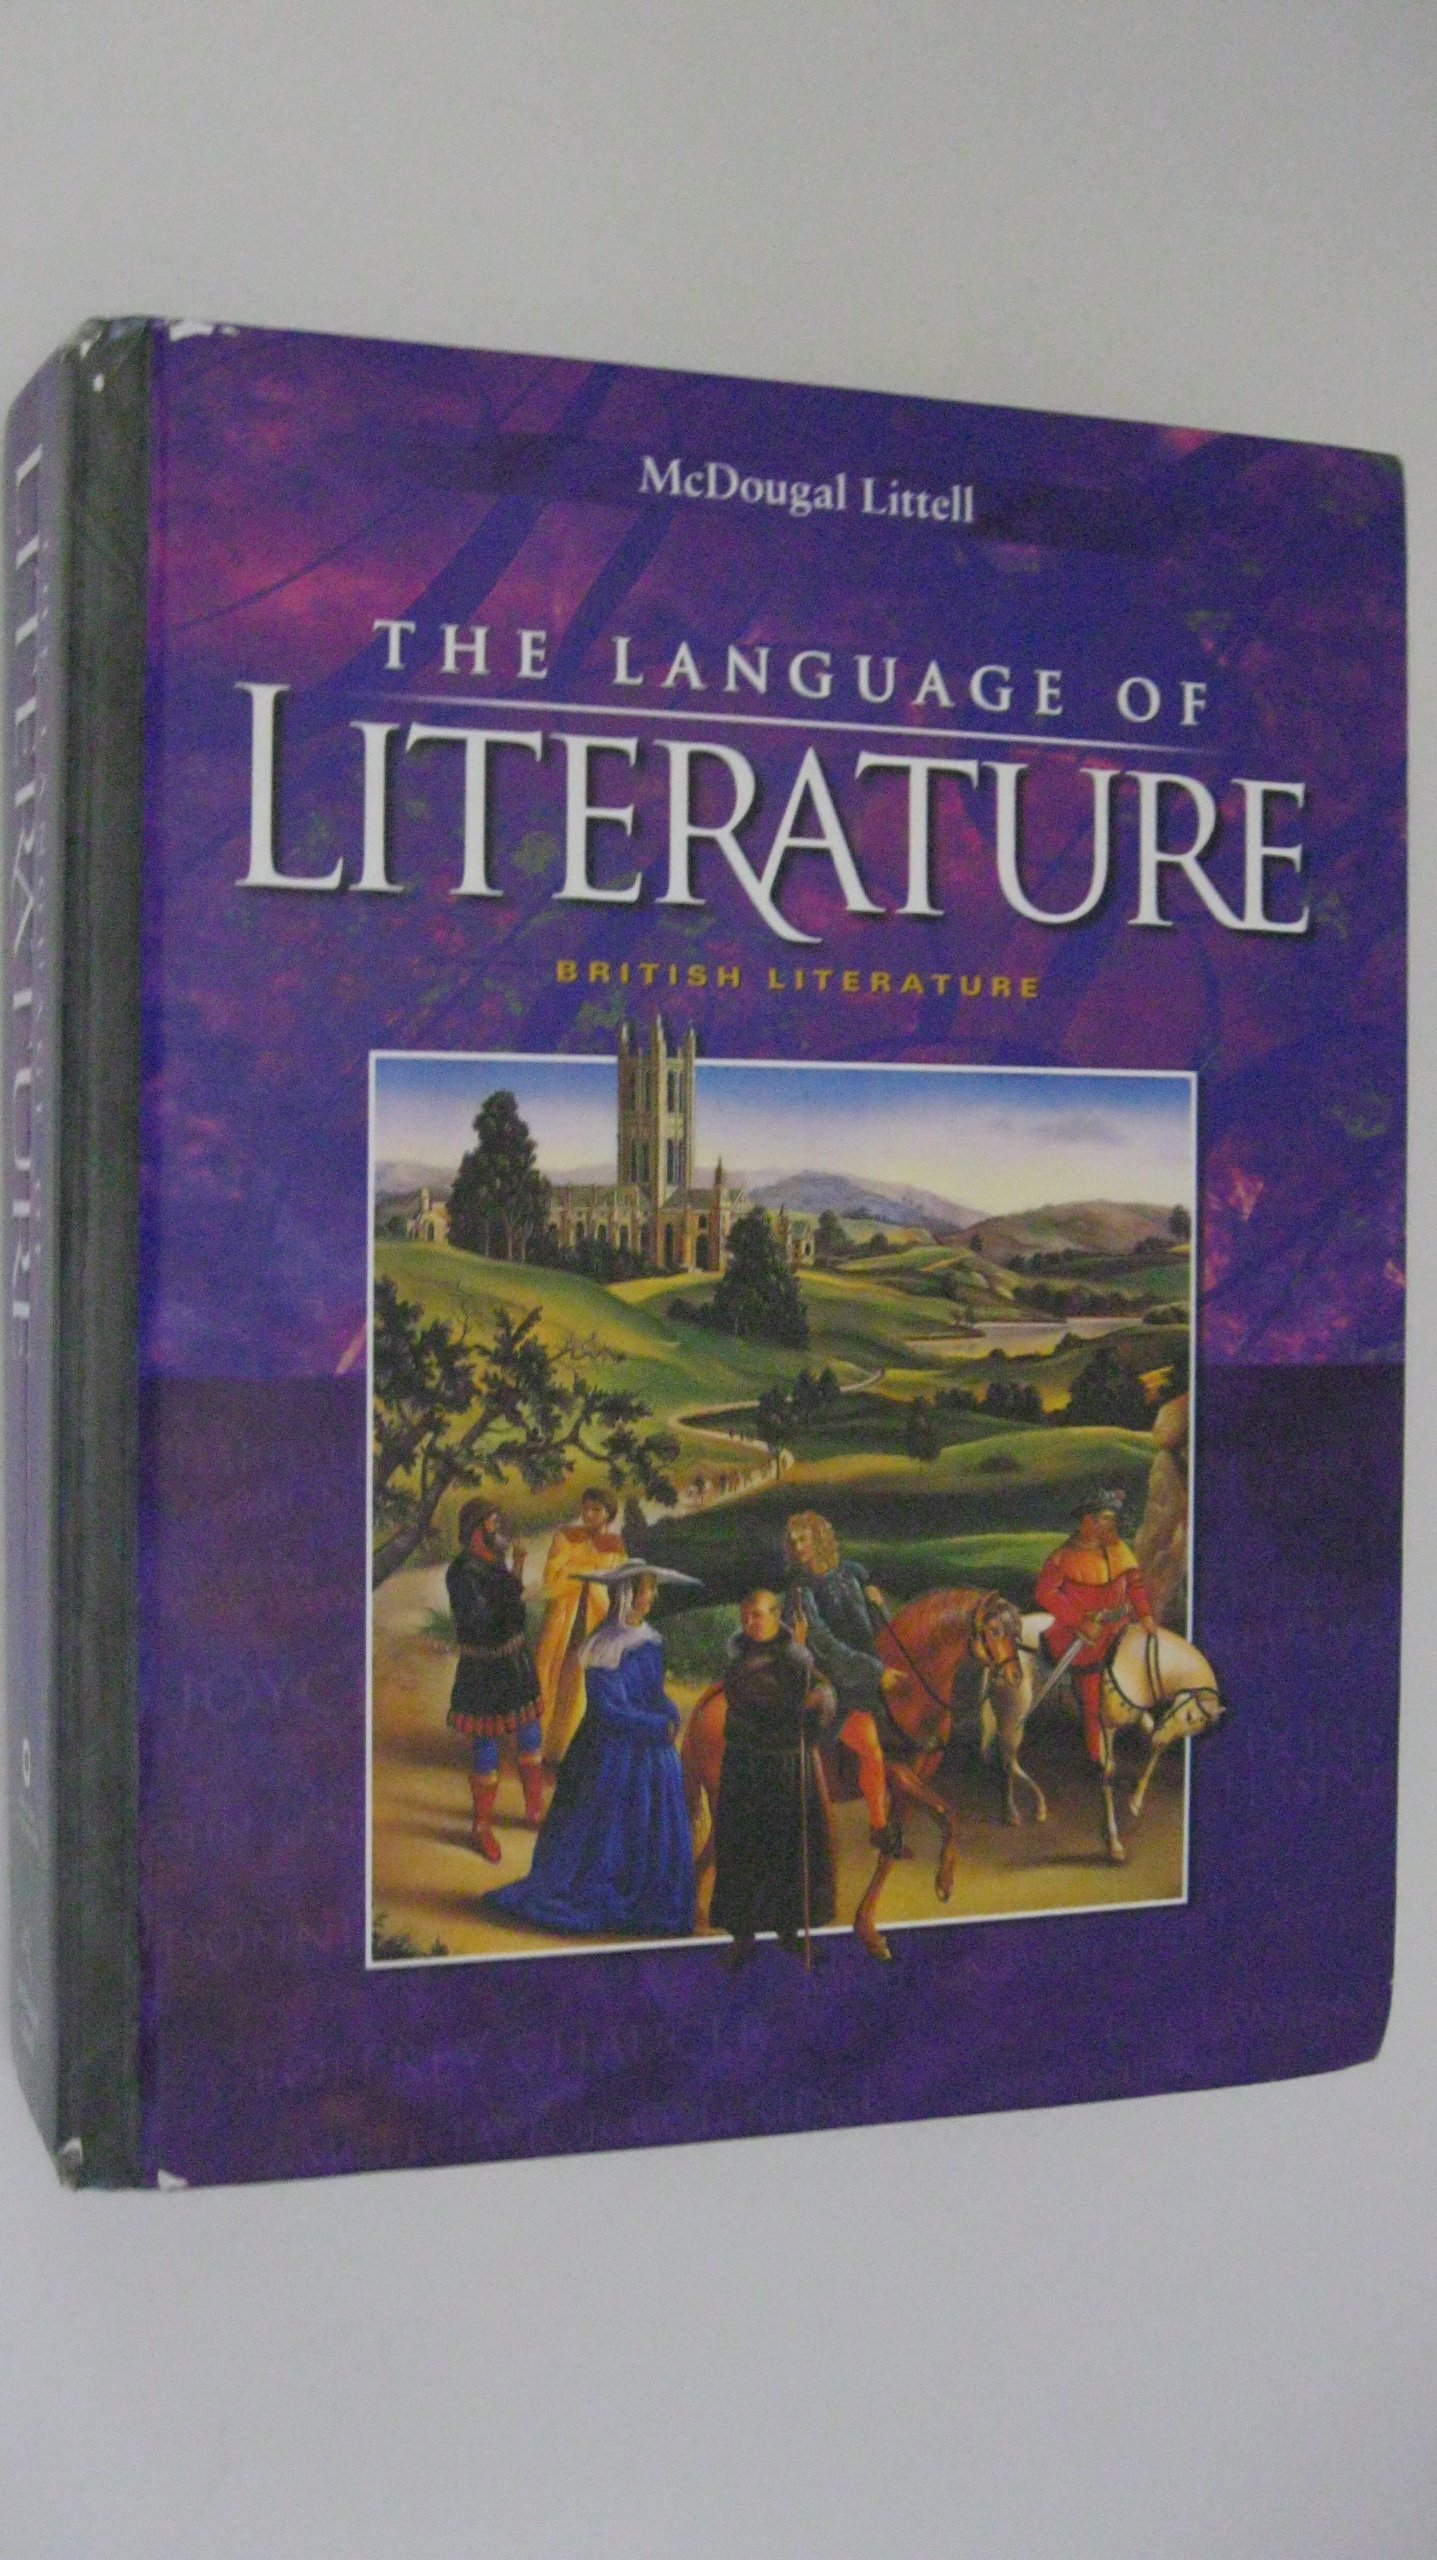 The Language of Literature: British Literature (McDougal Littell Language of Literature) by Brand: MCDOUGAL LITTEL